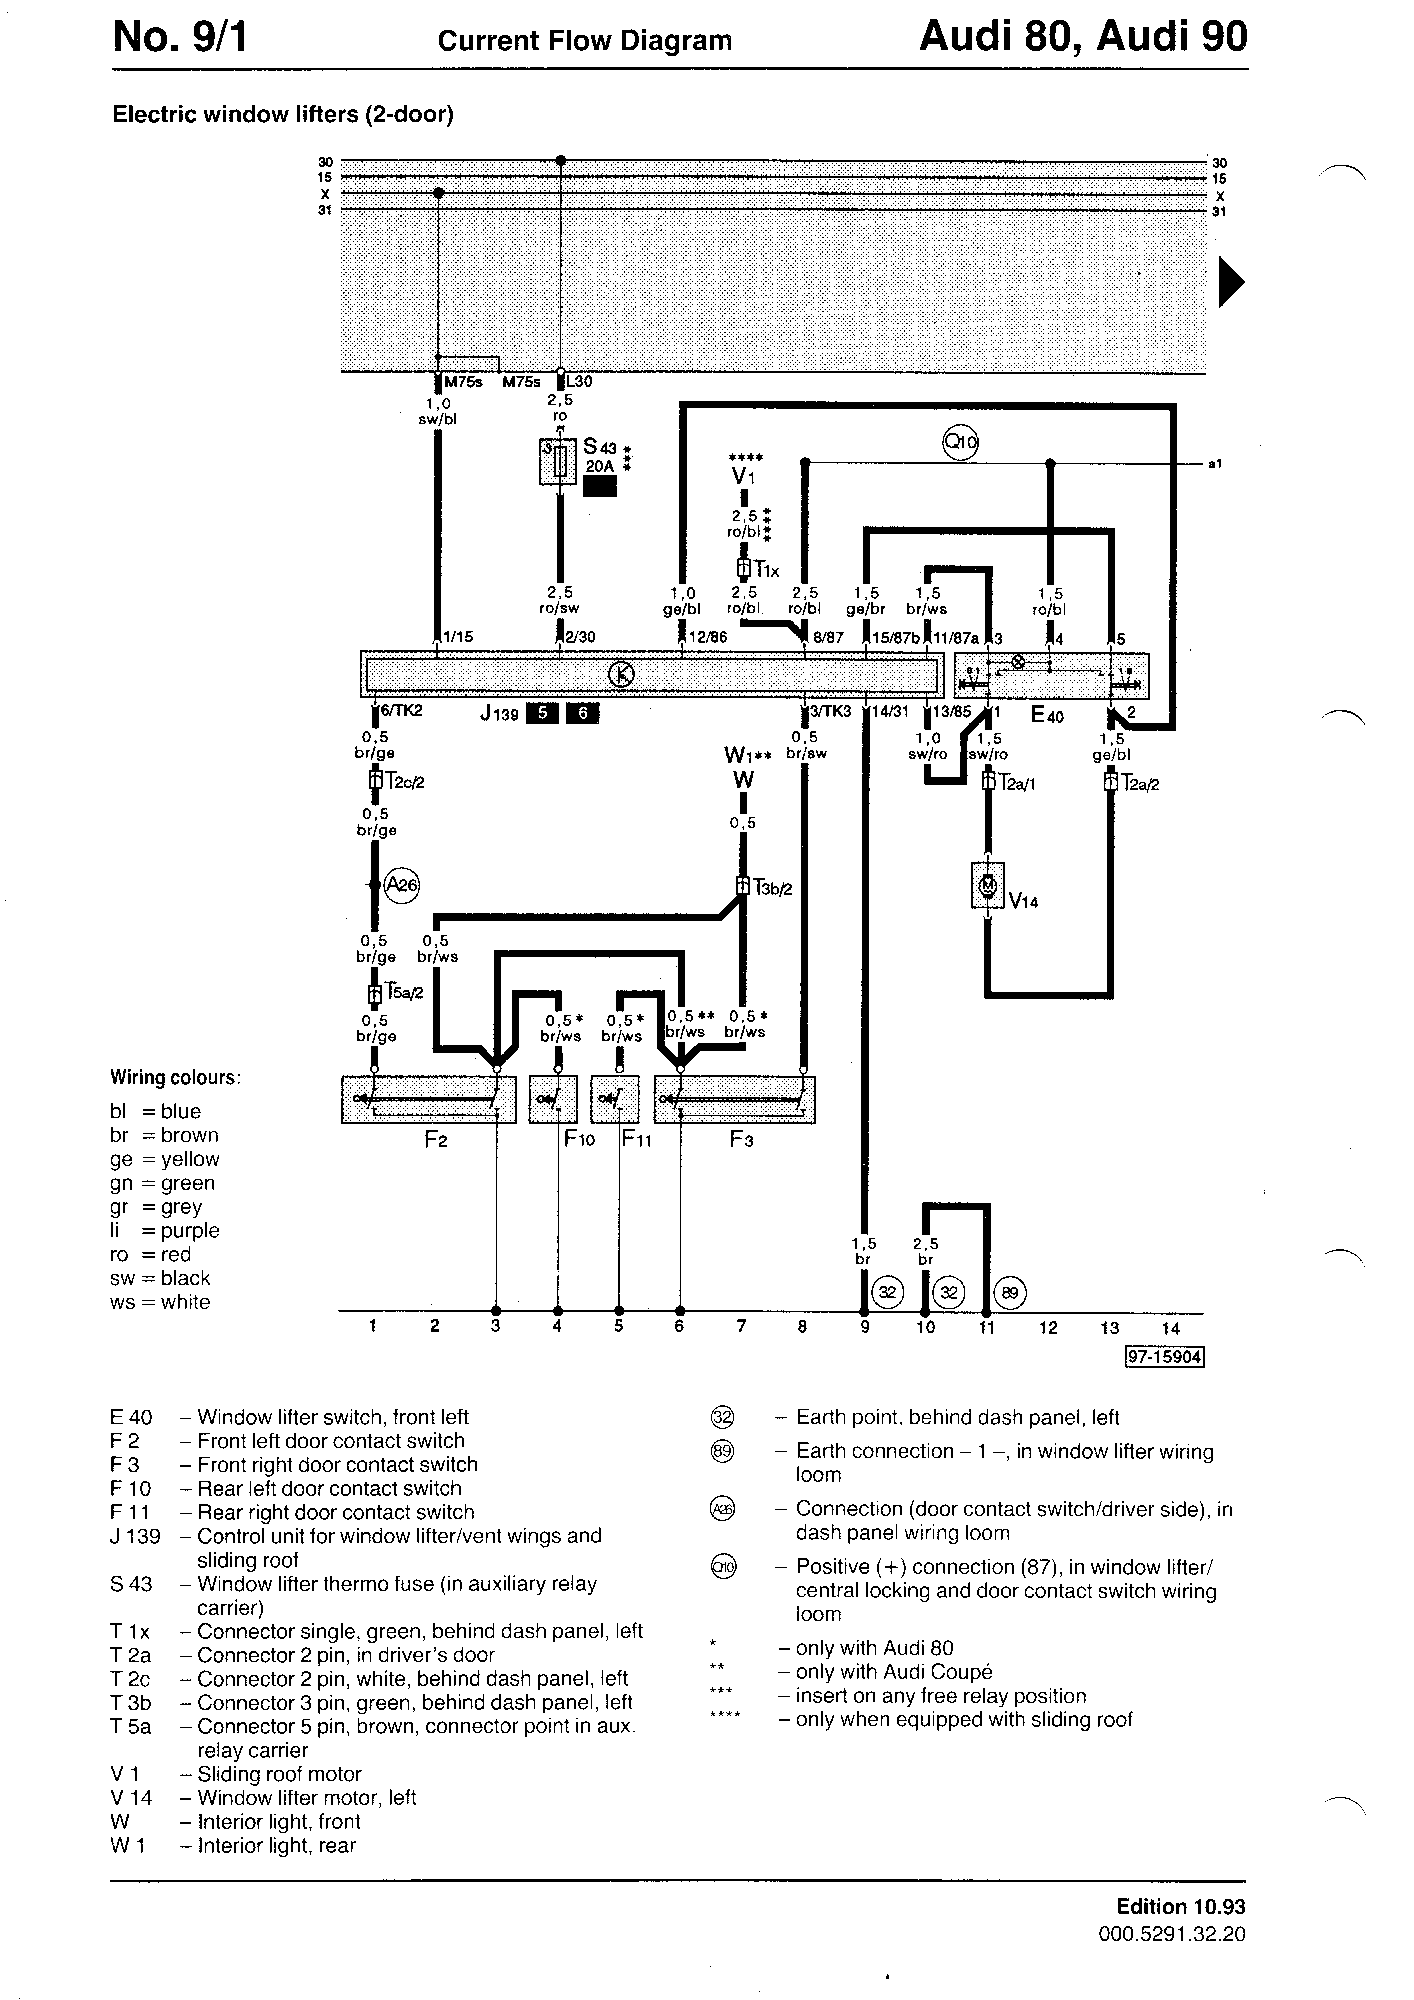 Fuse Diagram For 2001 Audi A4 Quattro B5 Wiring Library Diagrams Component Lookup Rh S2 Co Uk A6 98